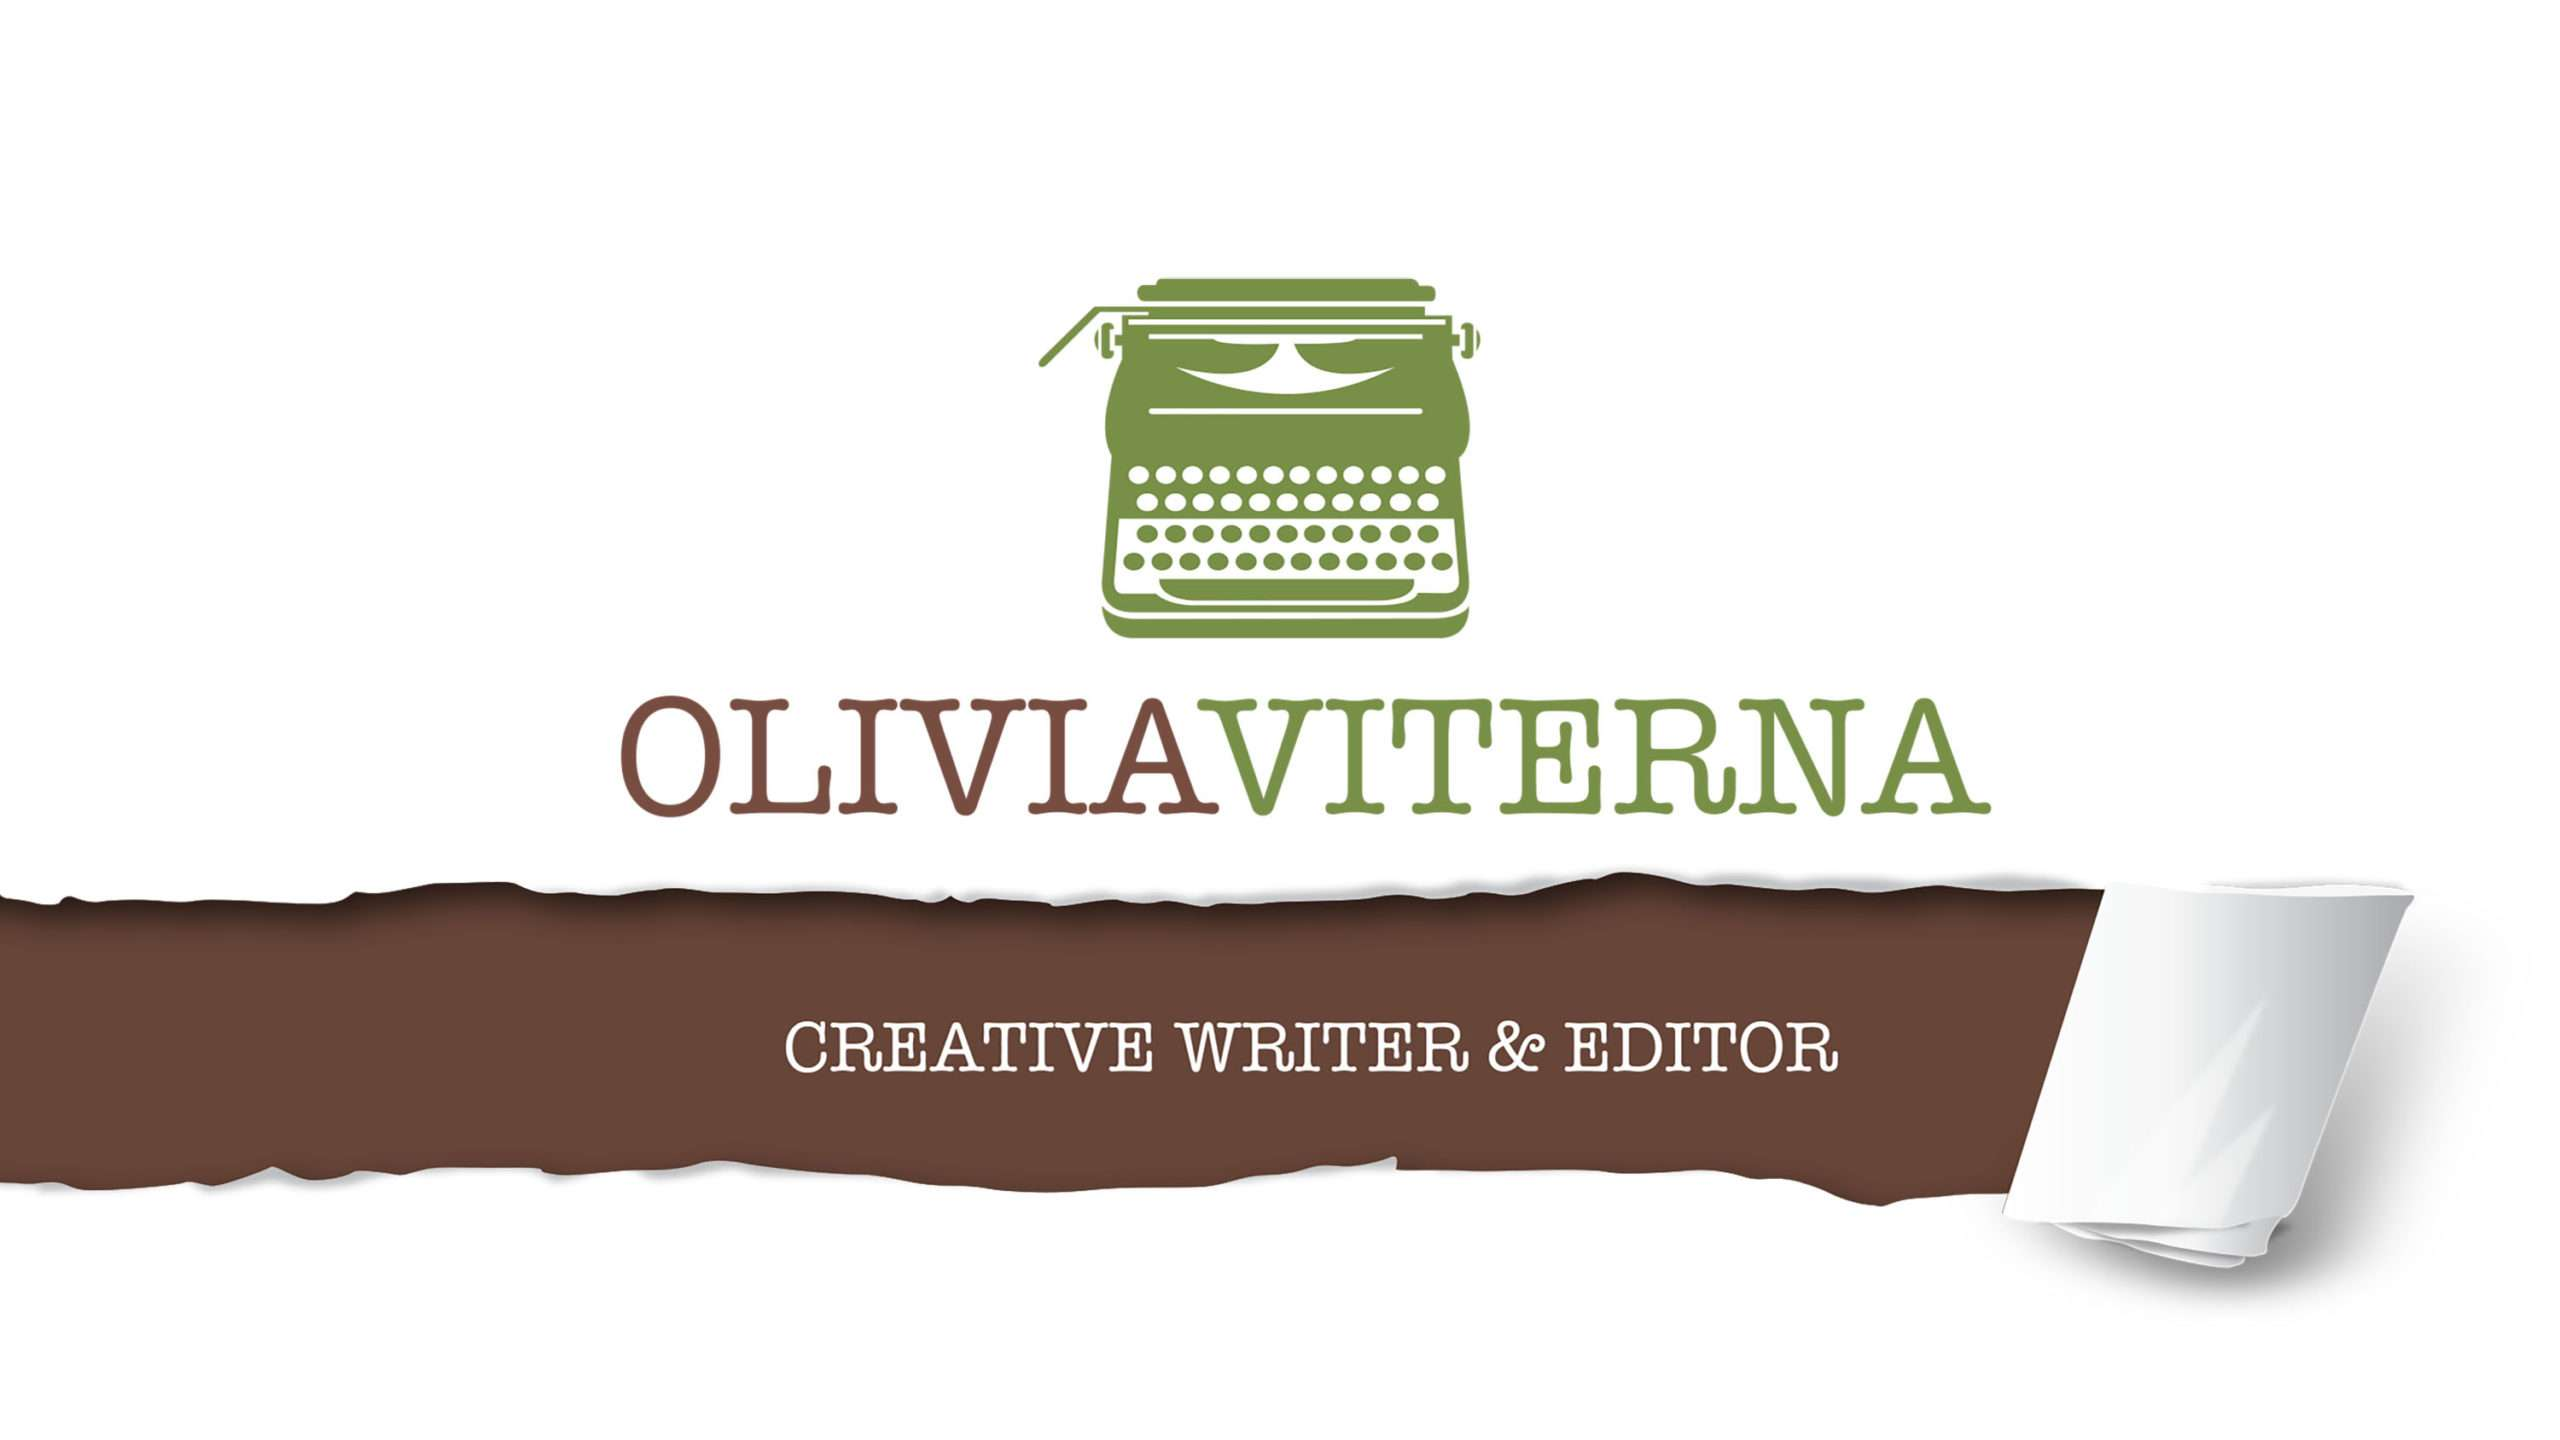 Green typewriter logo design with paper tear for a creative writer and editor.